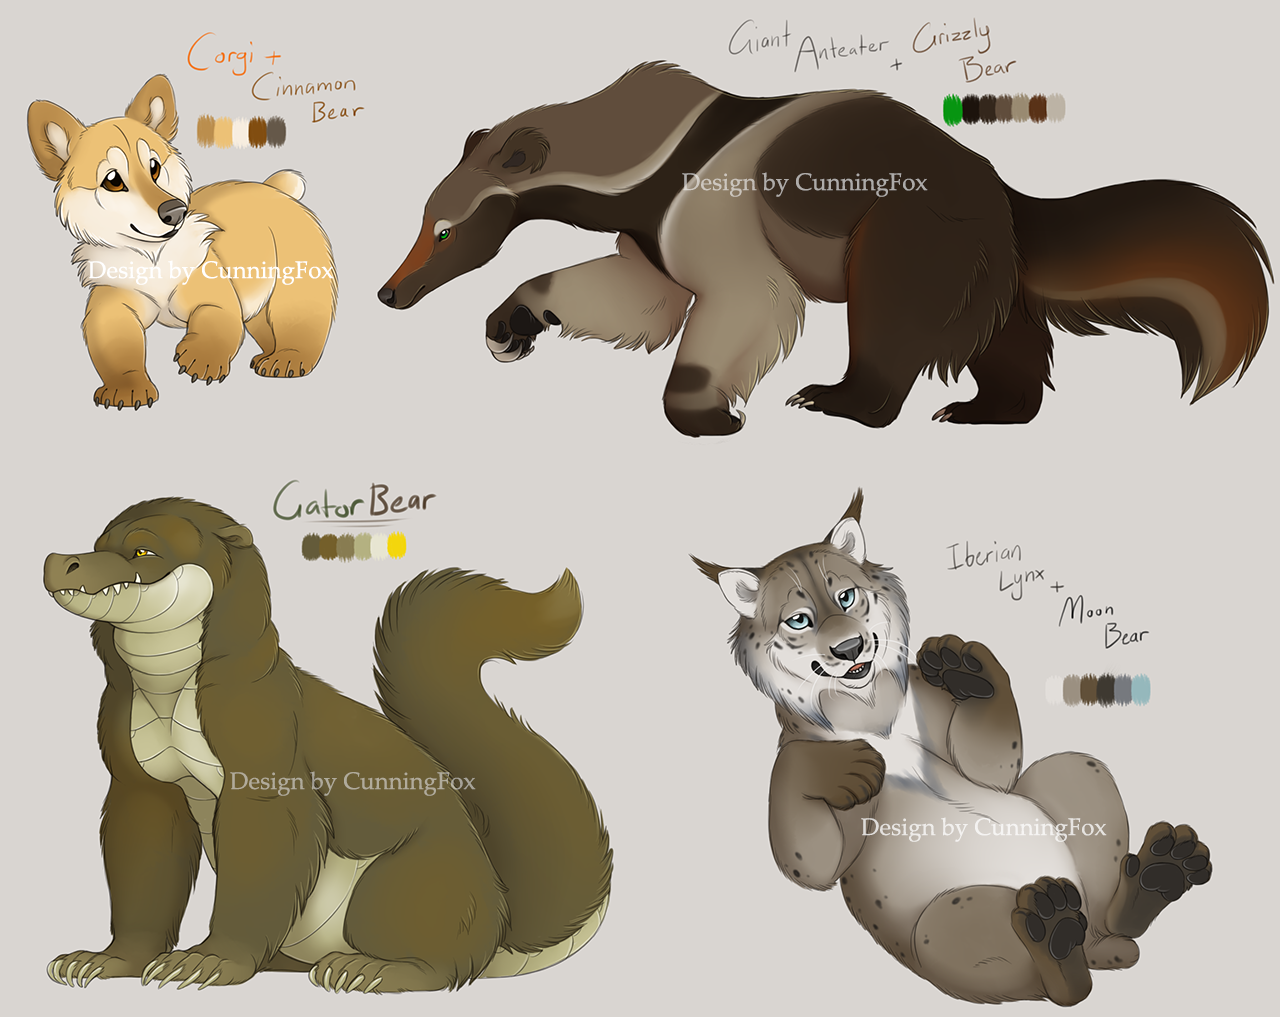 Bear hybrid characters (ENDED) by CunningFox on DeviantArt.